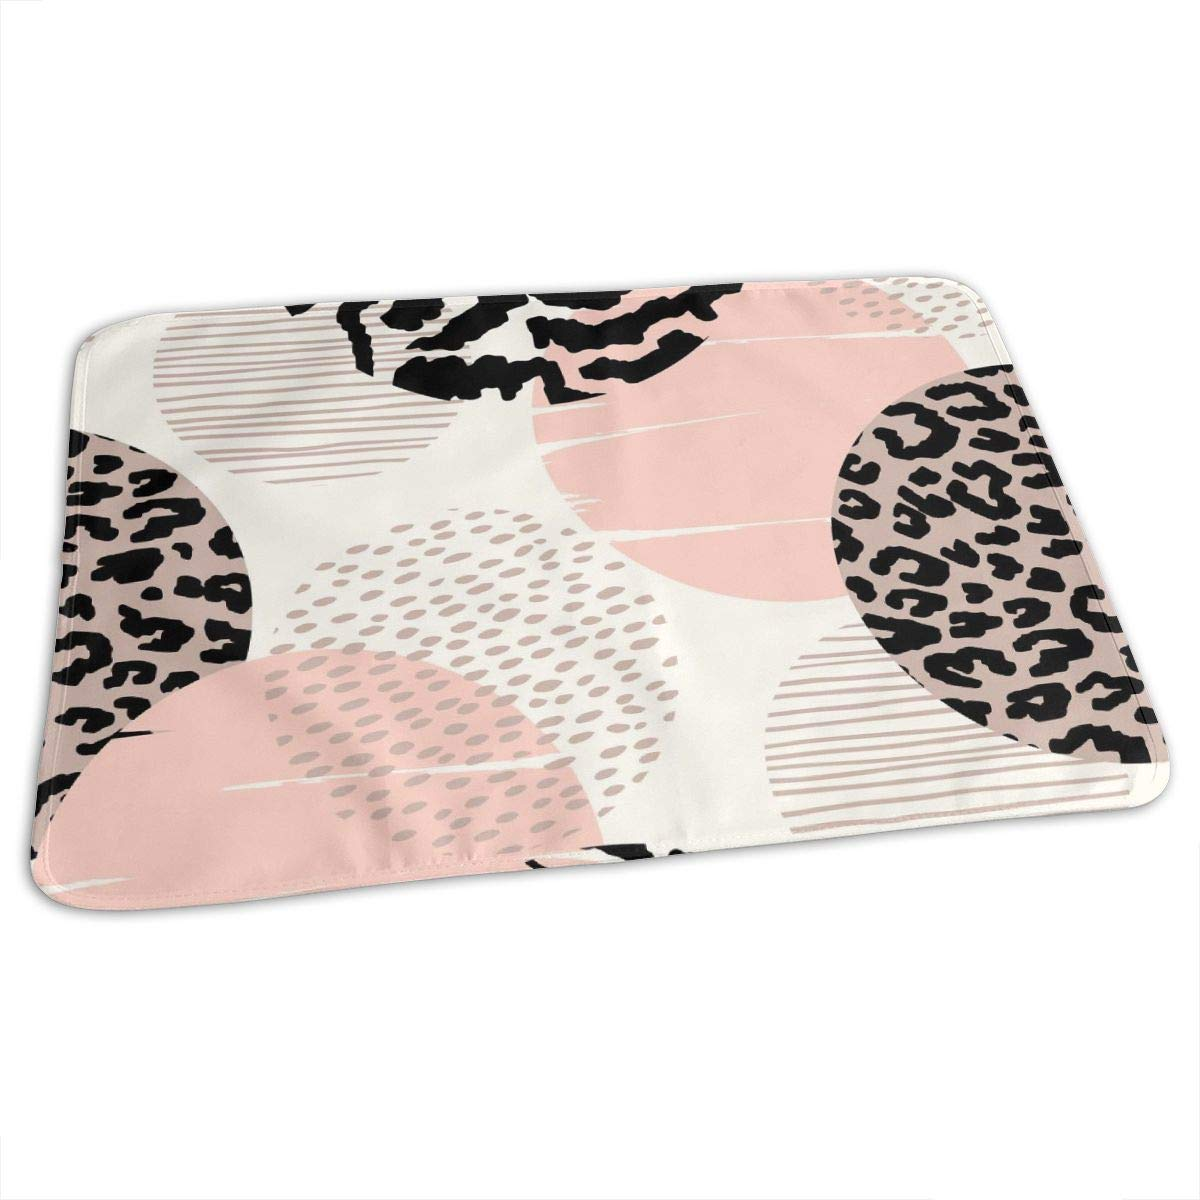 Osvbs Lovely Baby Reusable Waterproof Portable Abstract Geometric Leopard Print Changing Pad Home Travel 27.5''x19.7'' by Osvbs